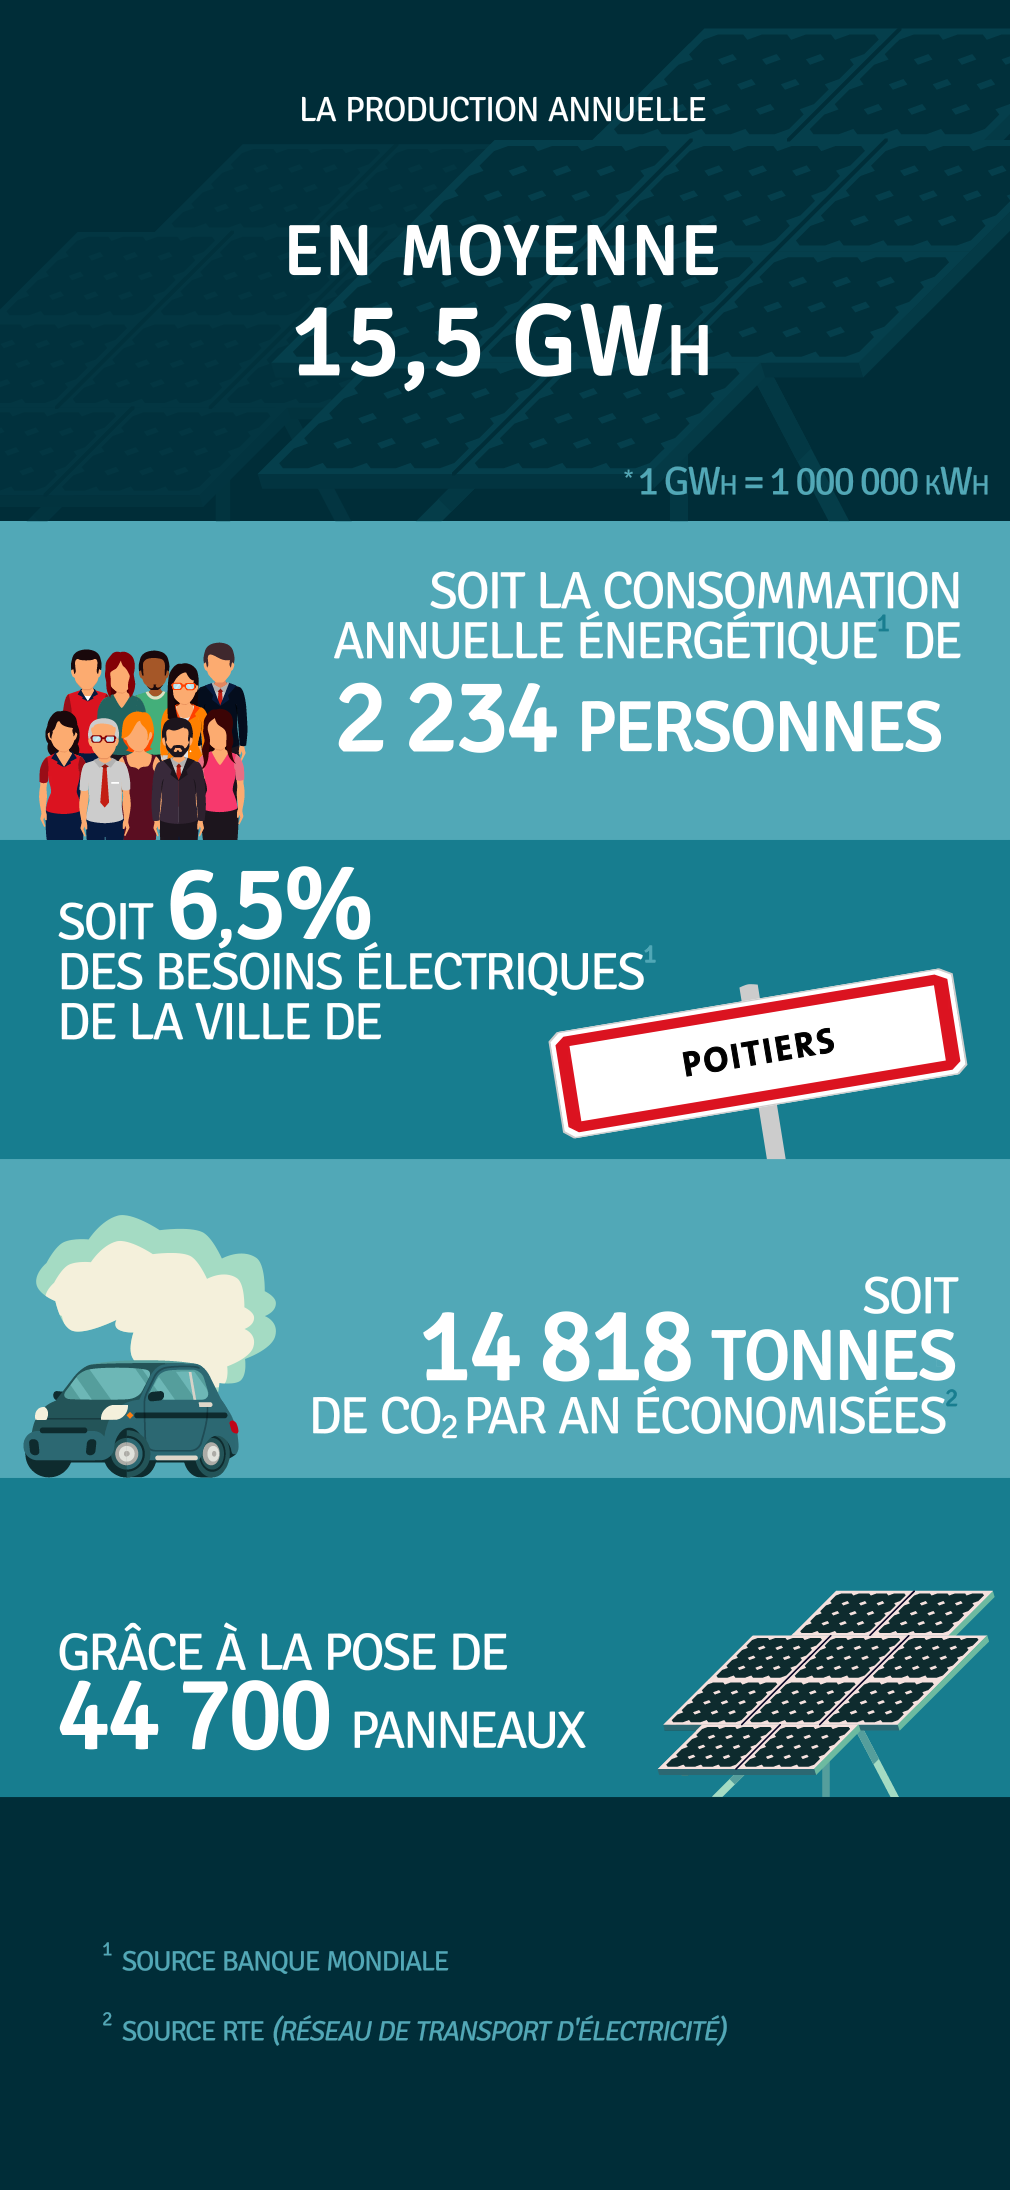 Production annuelle 15 500 000 kWh